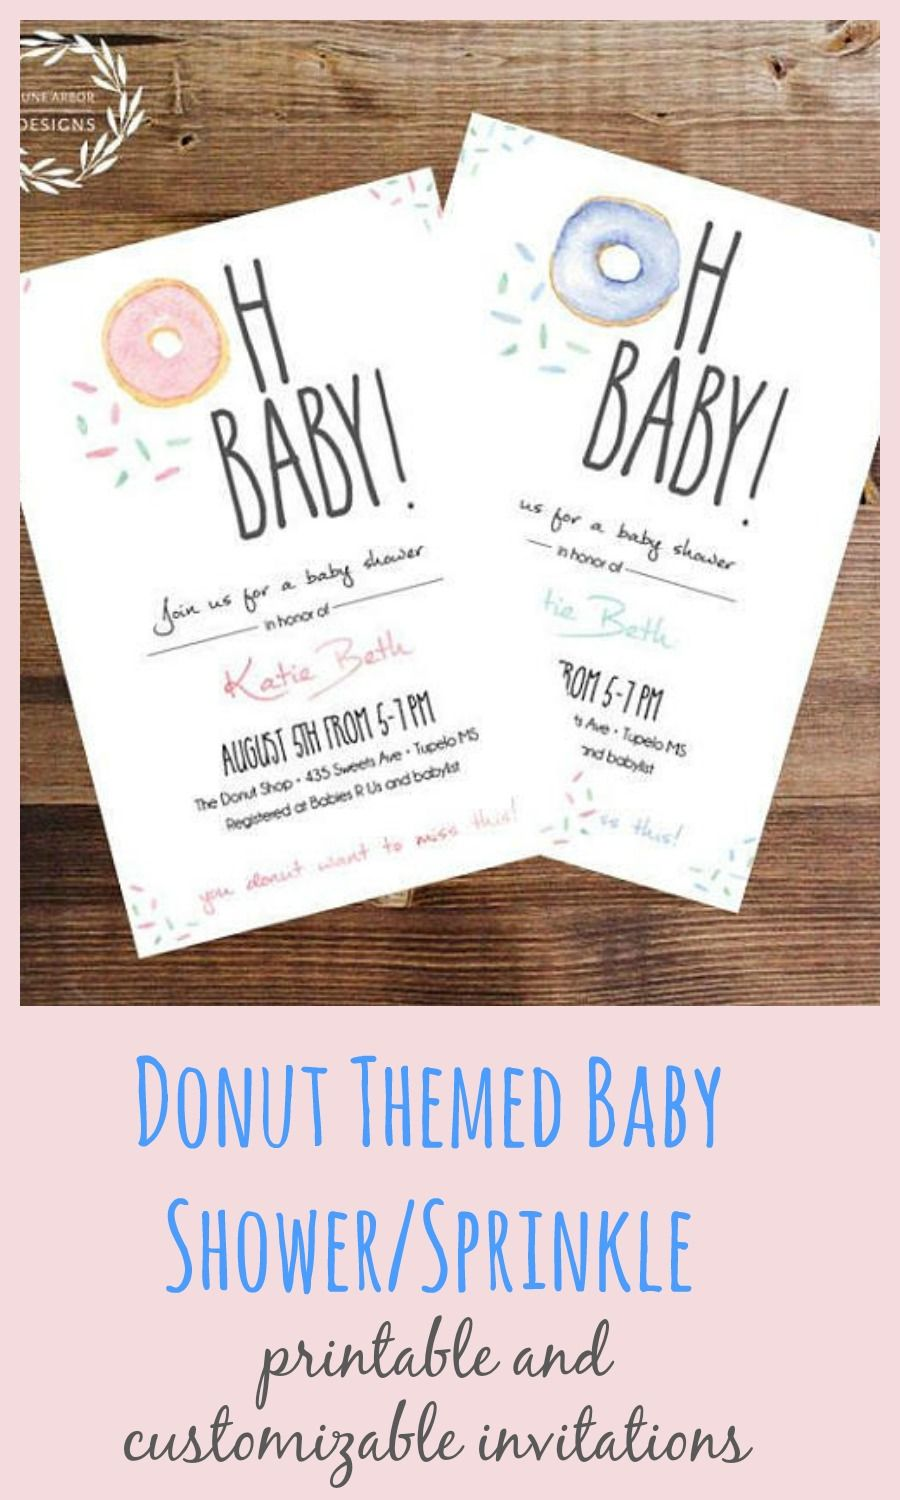 Donut Themed Baby Shower Invitations That Can Be Printed At Home